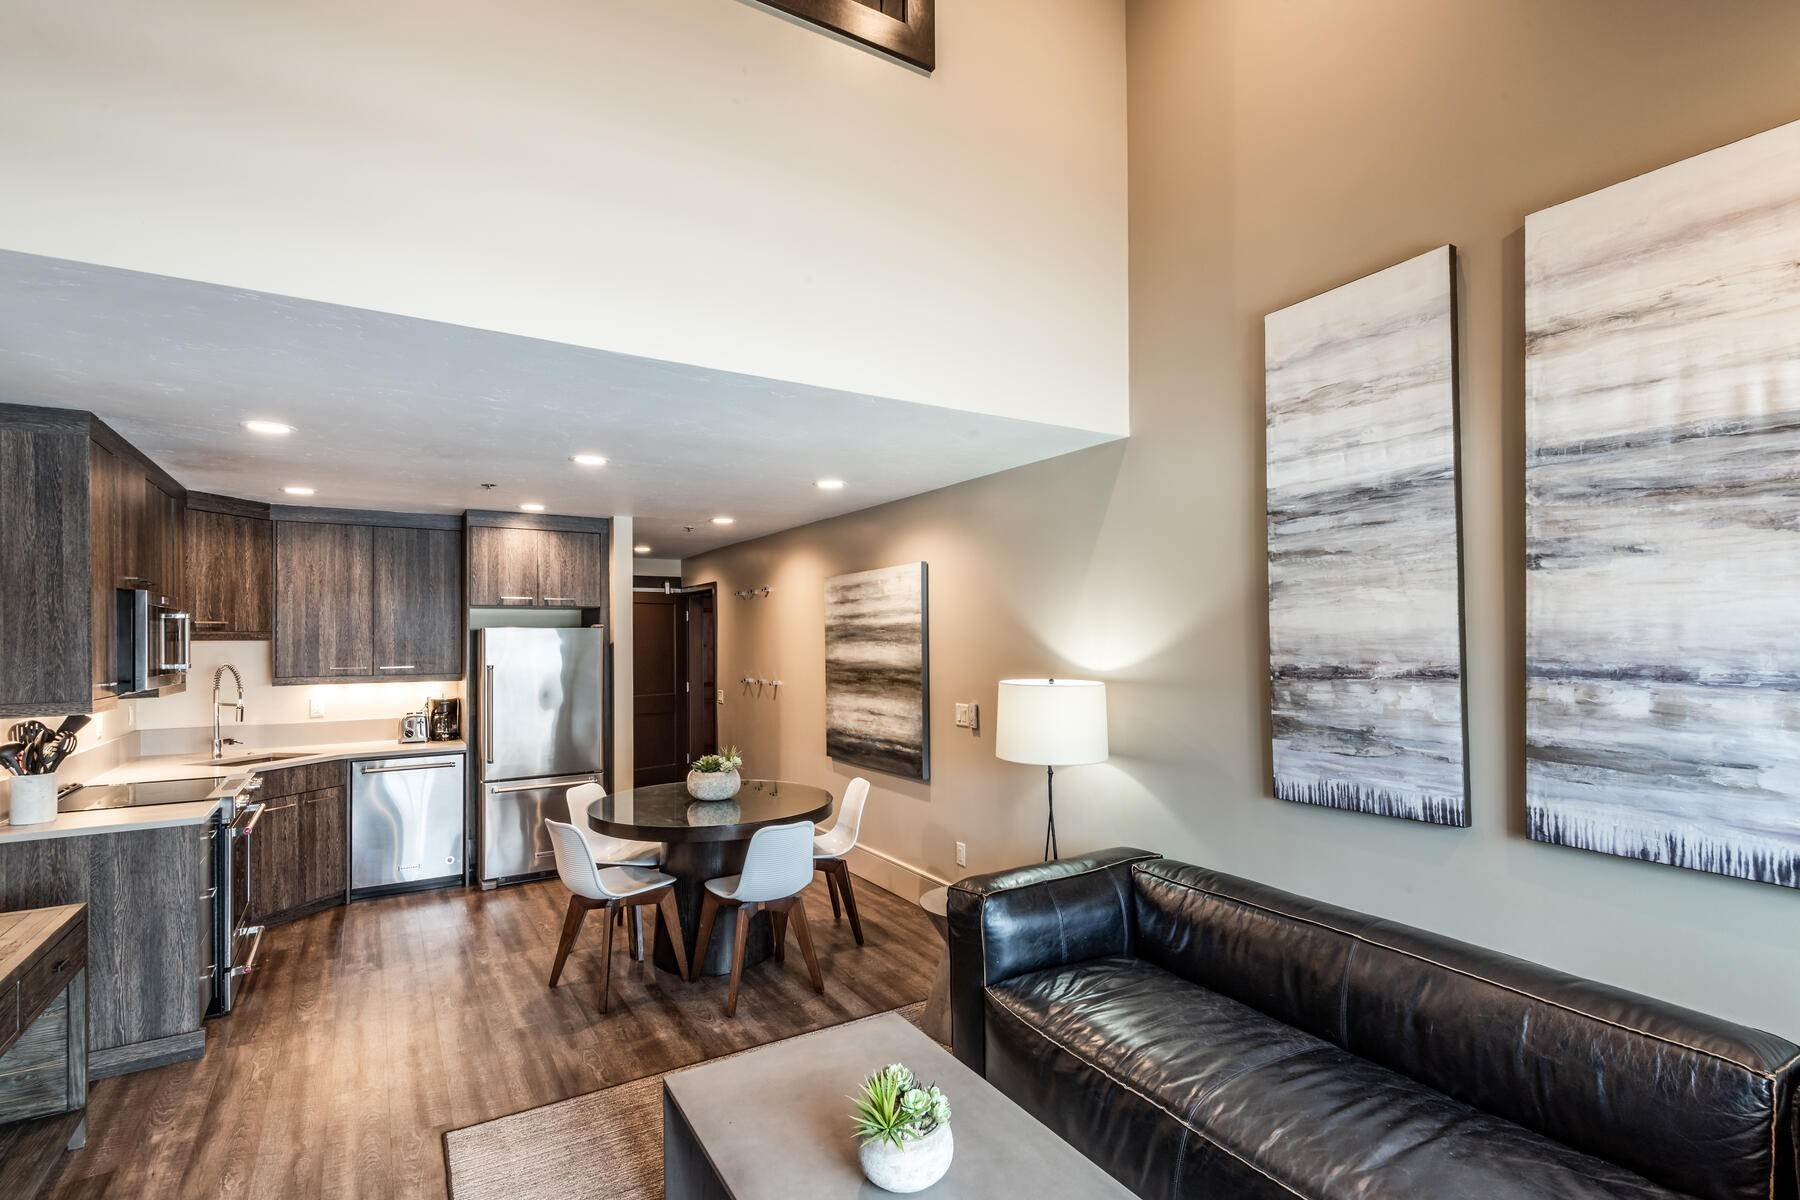 Condominiums for Sale at Best Location With Modern Finishes At the PCMR Center 1401 Lowell Ave #33 Park City, Utah 84060 United States